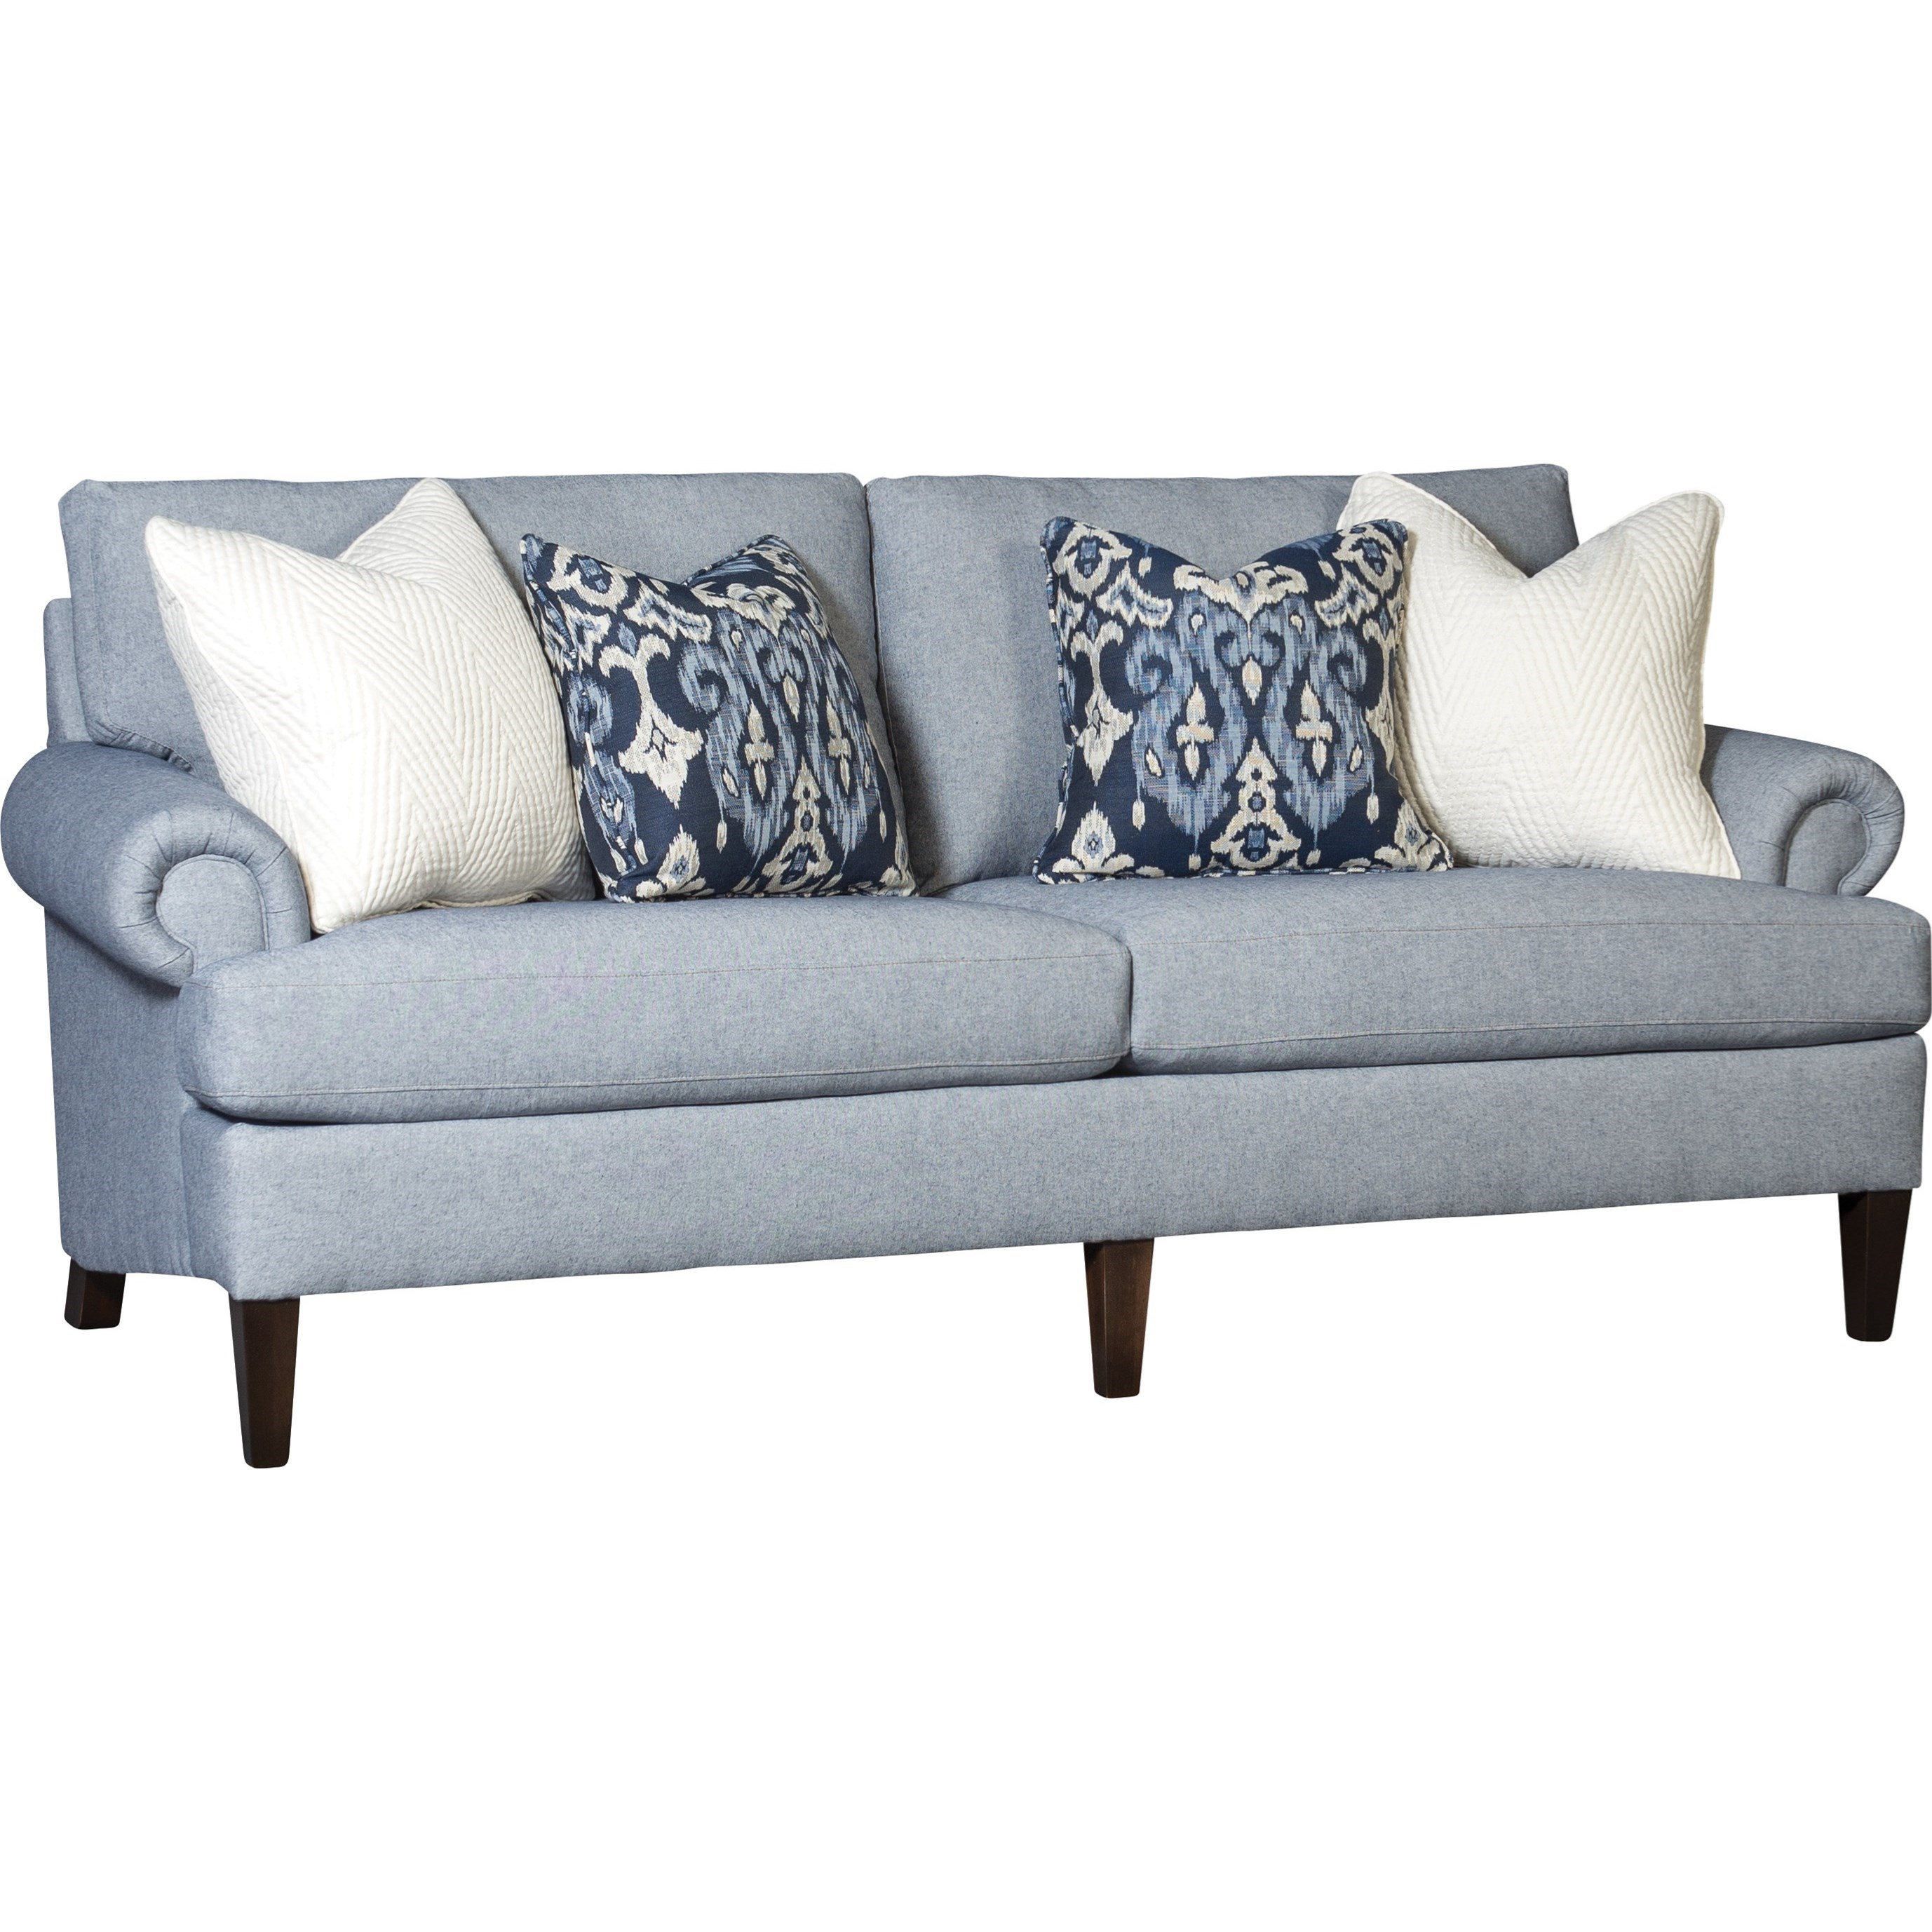 5070 Sofa by Mayo at Wilson's Furniture